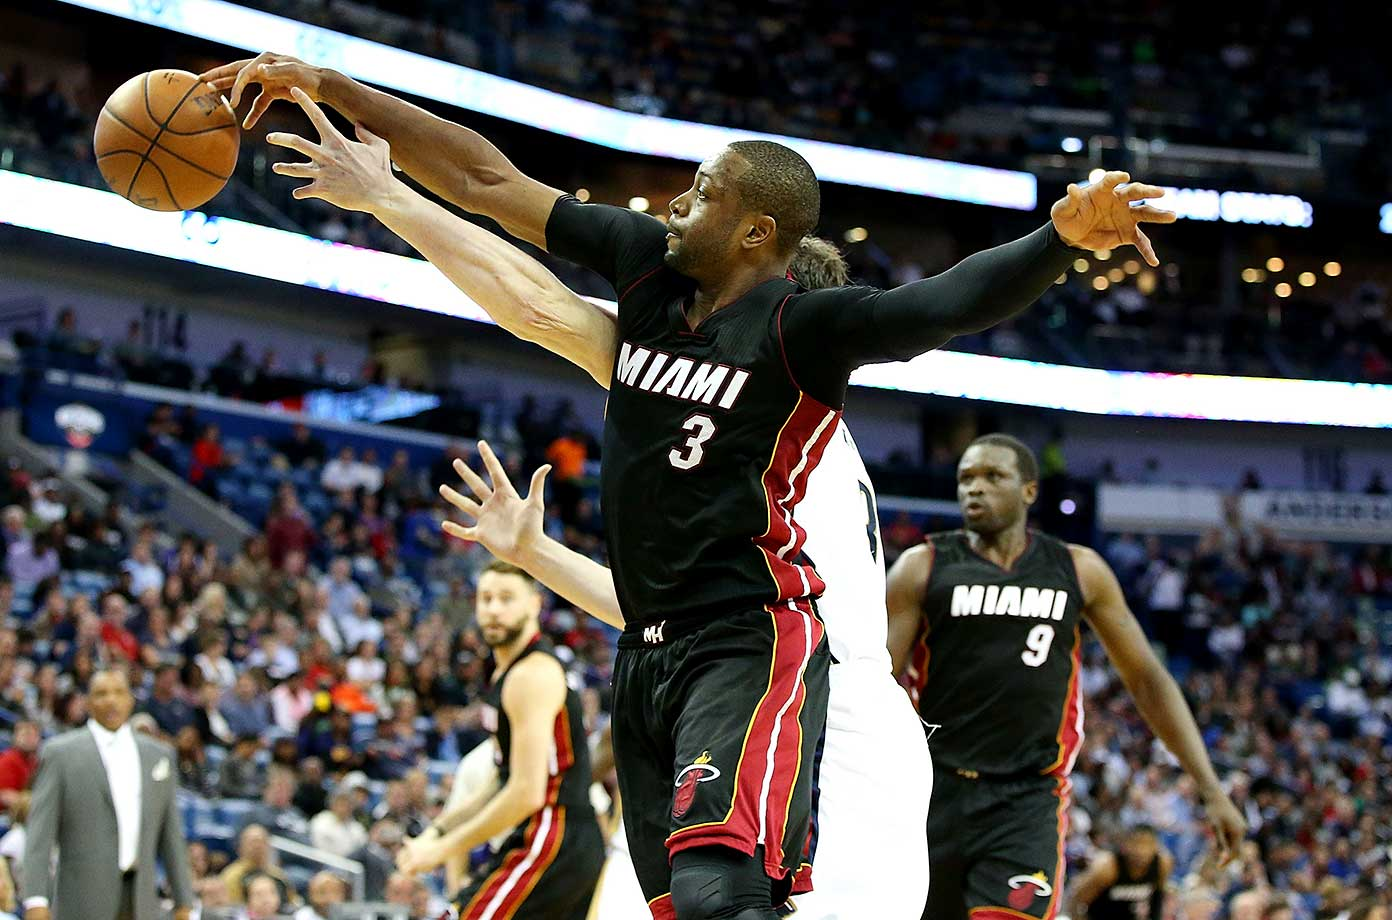 Dwyane Wade of the Miami Heat fights for a loose ball with Omer Asik of the New Orleans Pelicans.